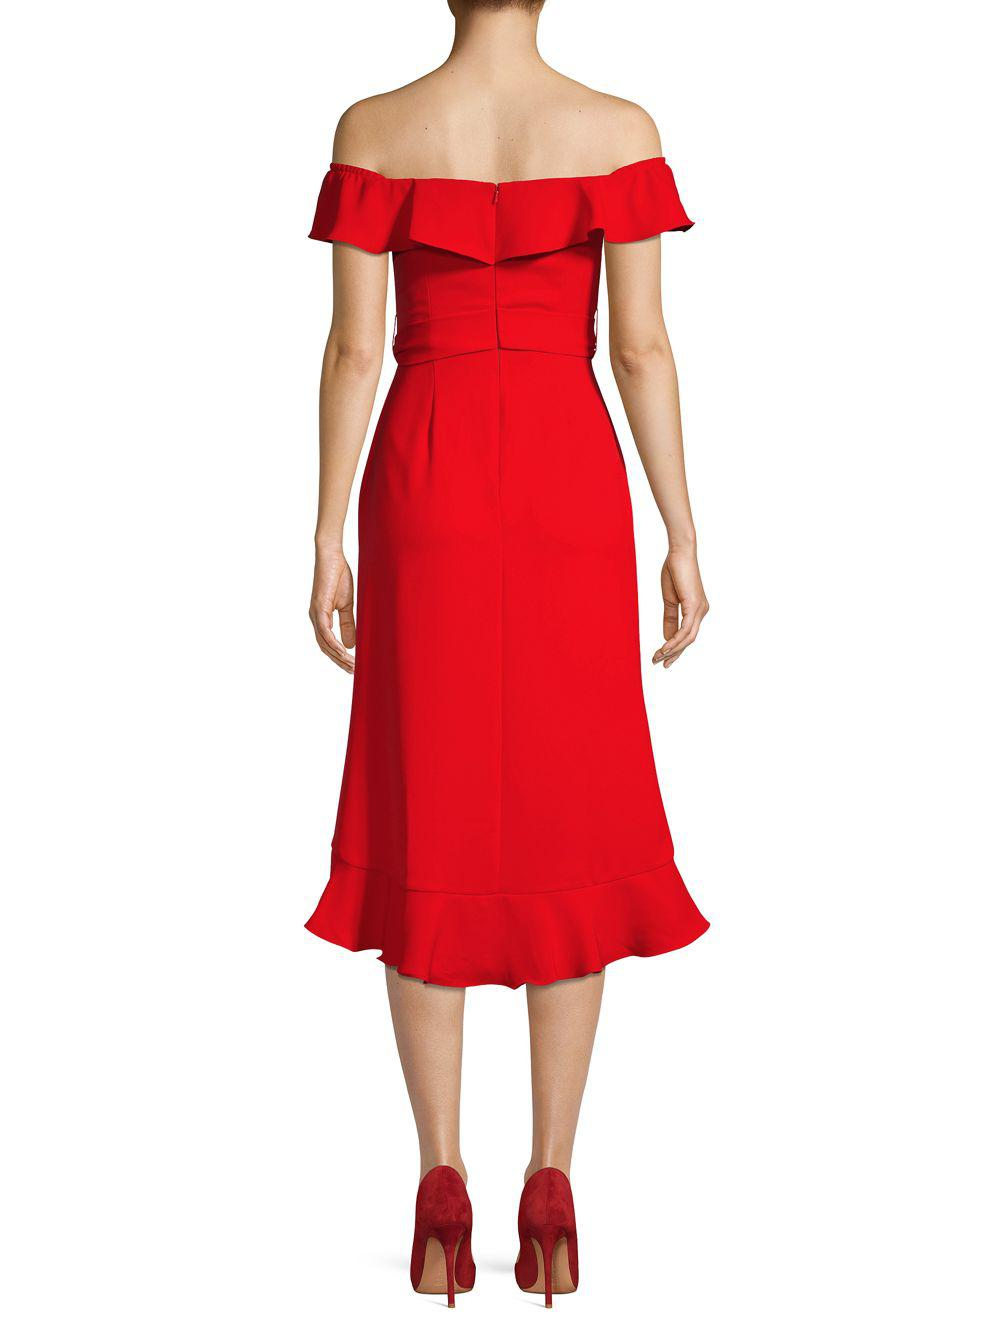 937376cf76056 Jay Godfrey - Red Off-the-shoulder Ruffled A-line Cocktail Dress -. View  fullscreen